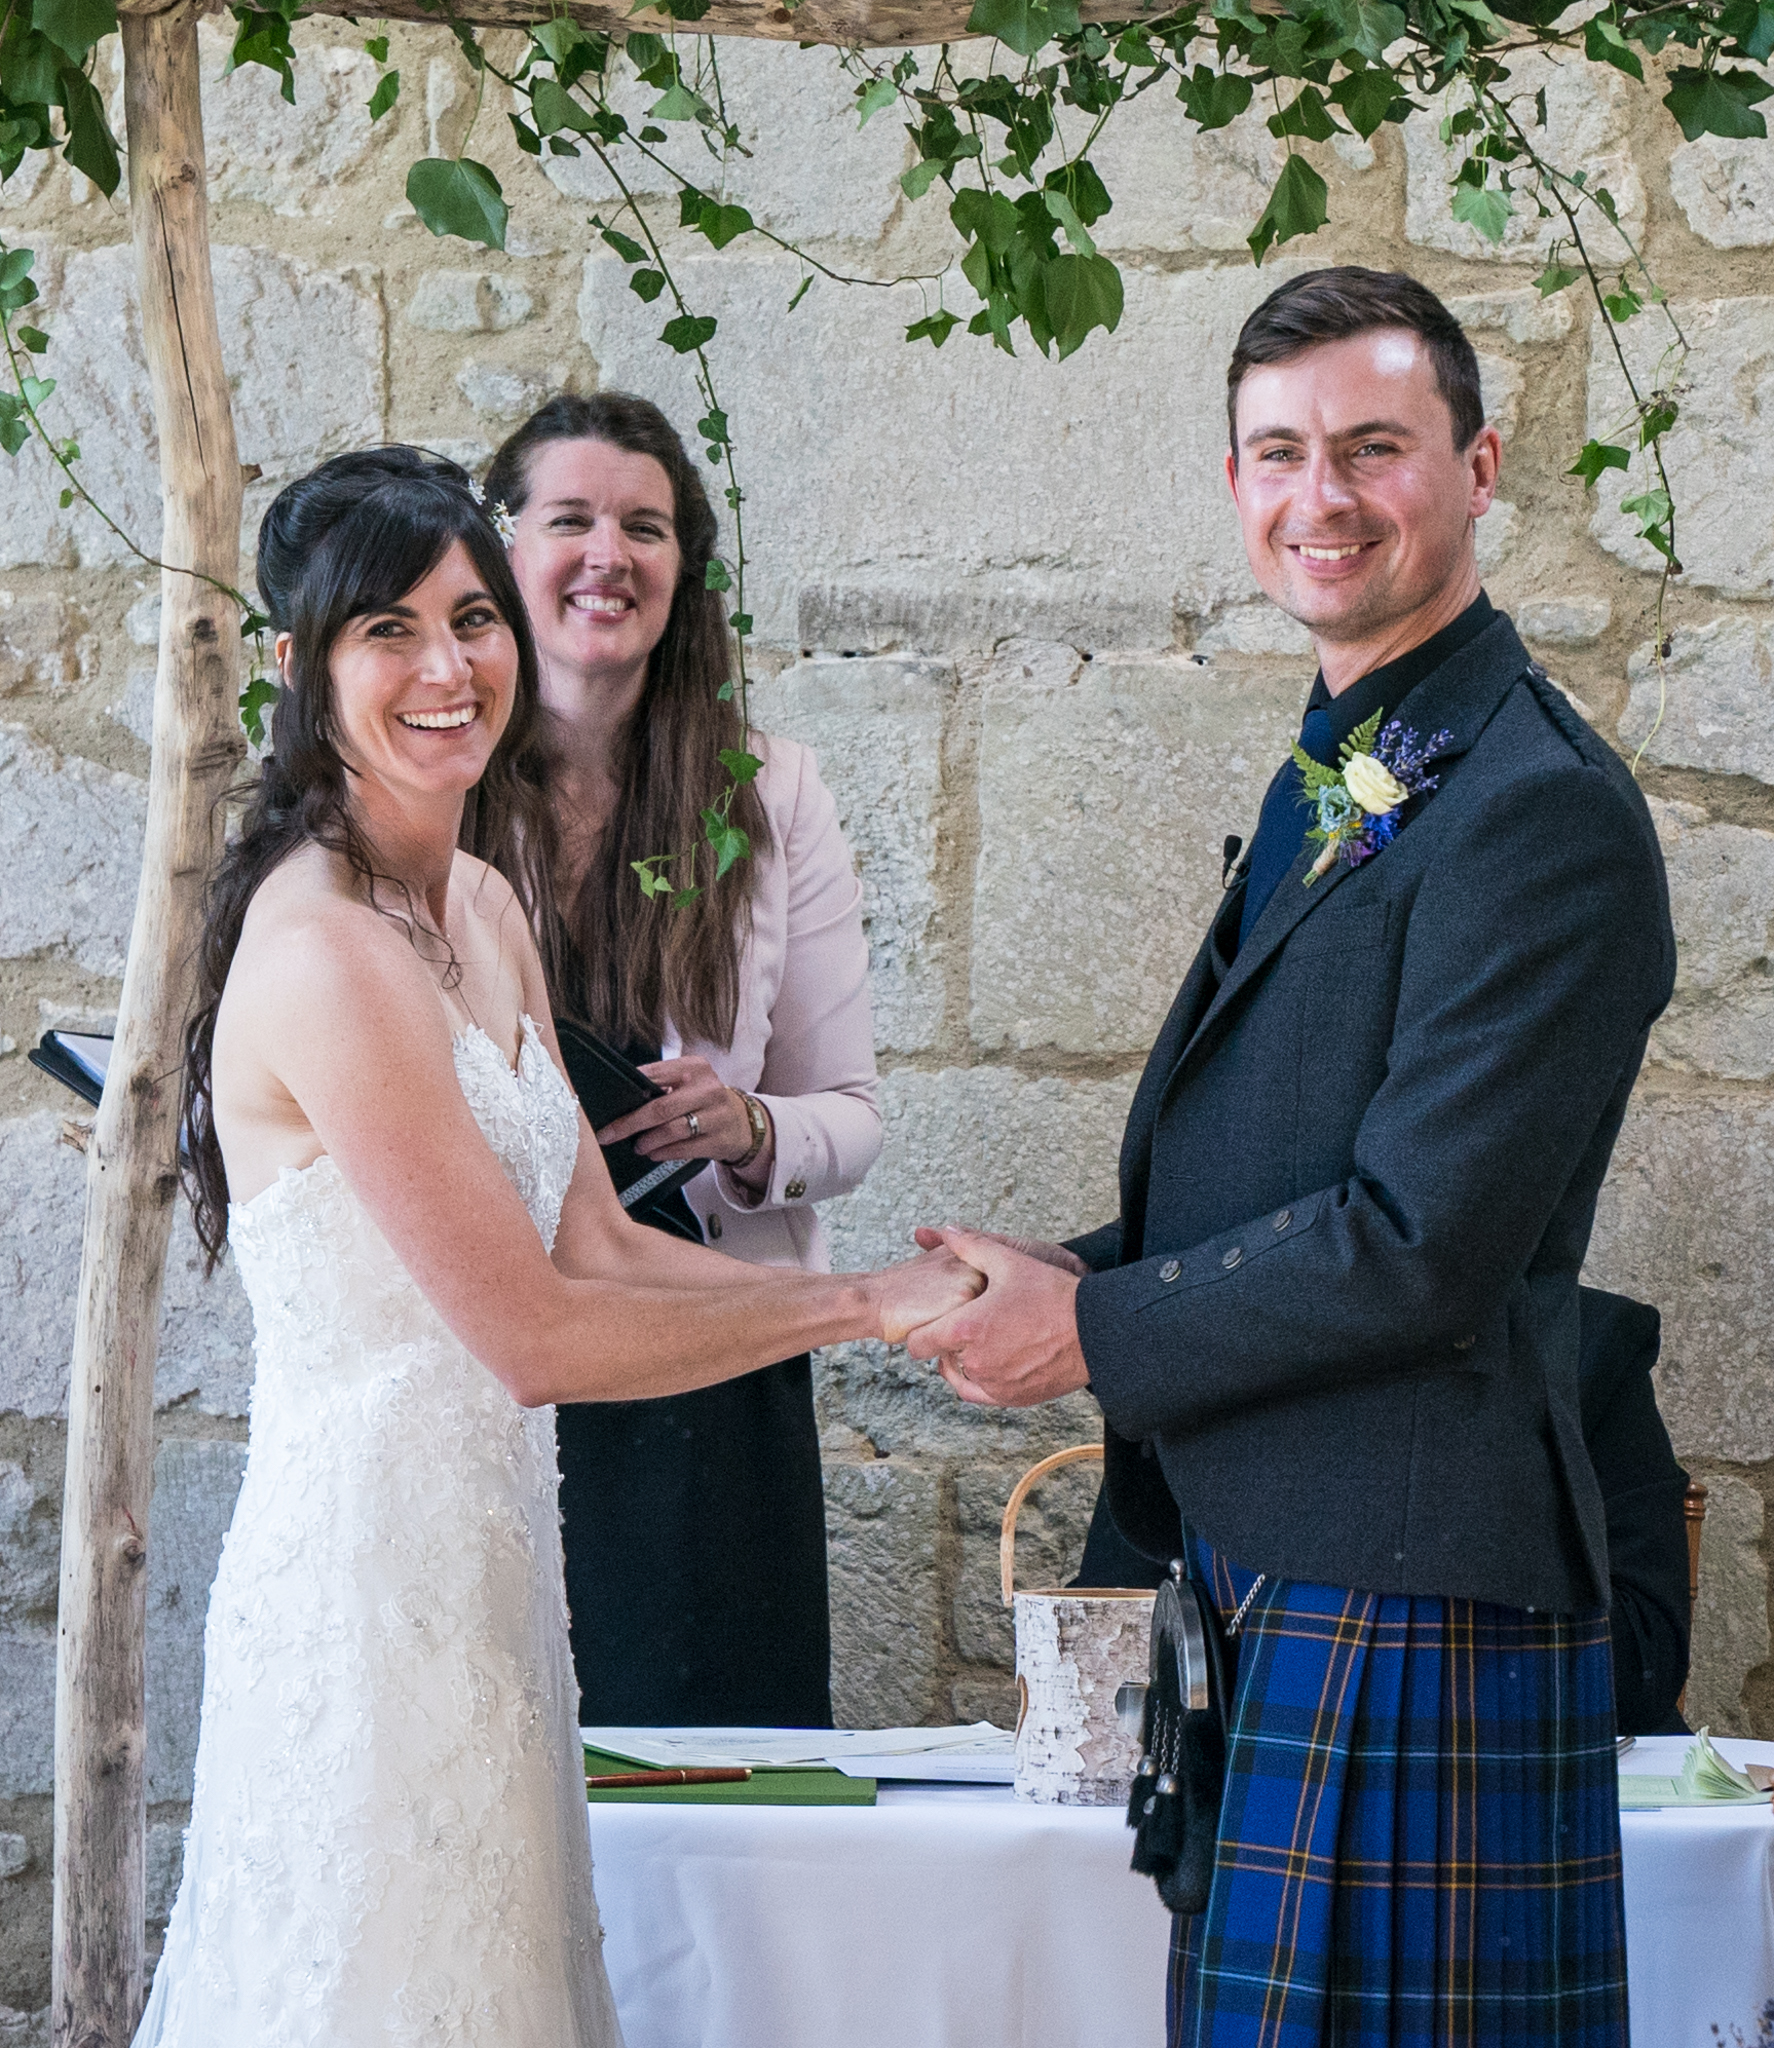 Nat & Pete-June 2017-Ceremony (49 of 60).jpg